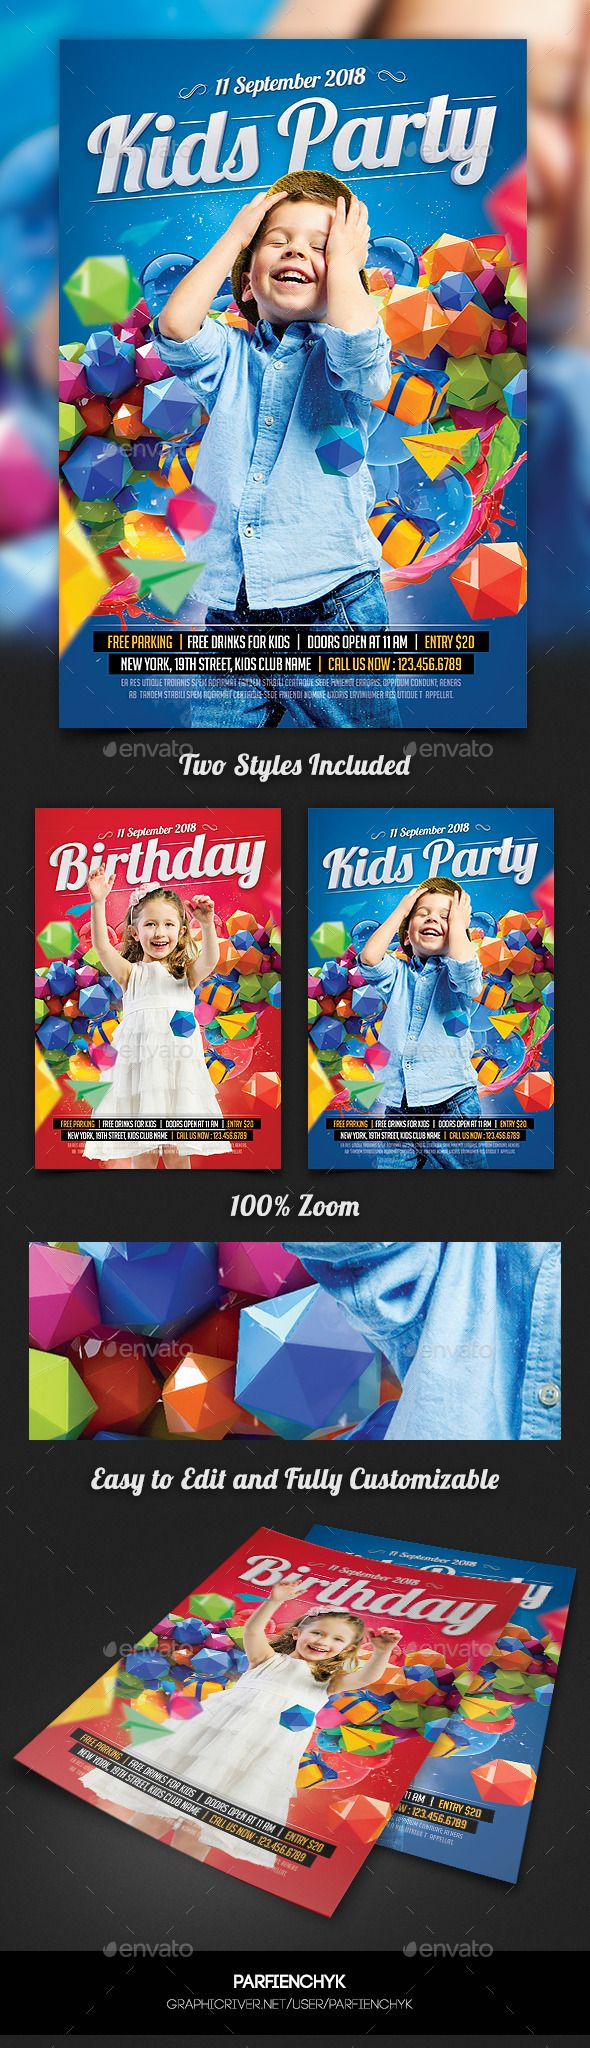 Kids Birthday Party Flyer Template — Photoshop PSD #party flyer #candy • Available here → https://graphicriver.net/item/kids-birthday-party-flyer-template/10739458?ref=pxcr